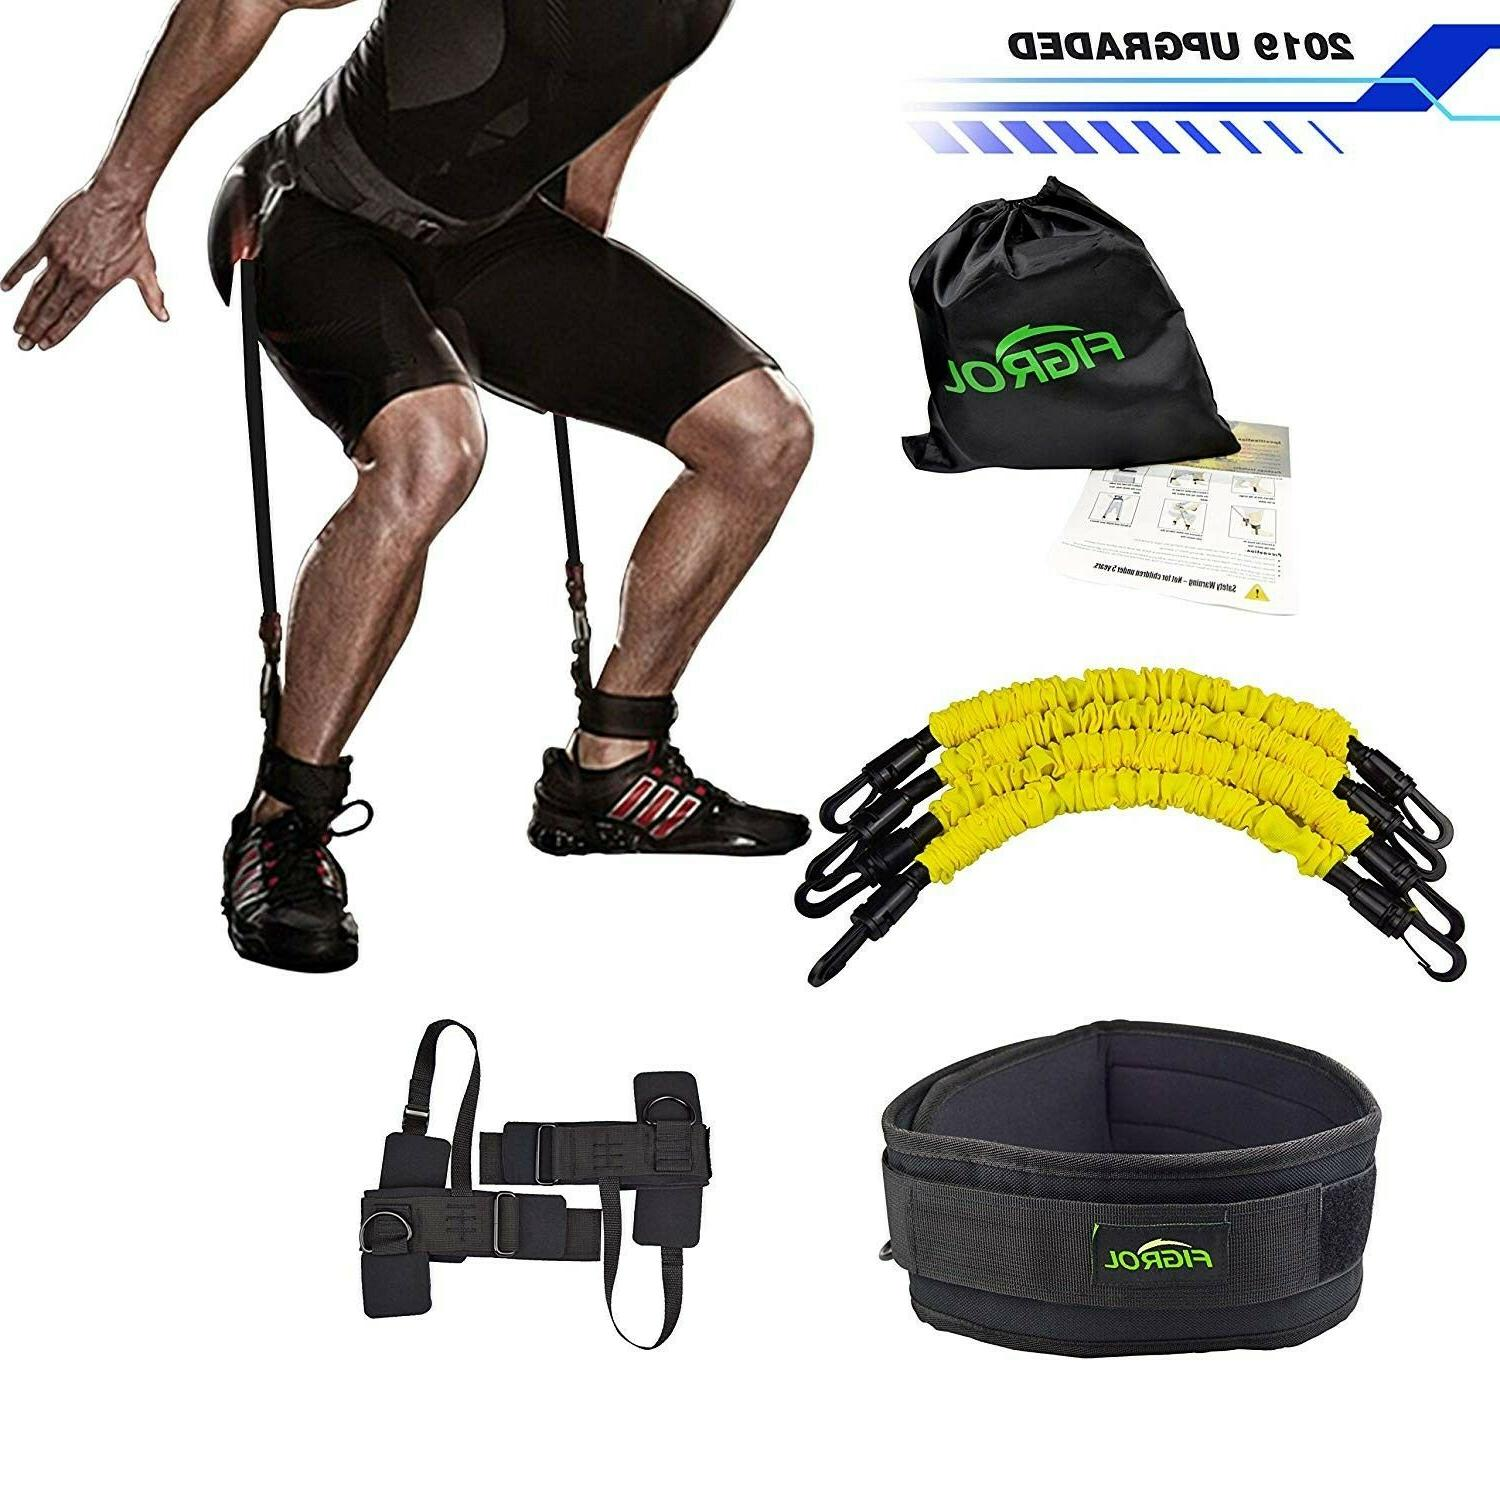 resistance bands training strength ankle straps jump